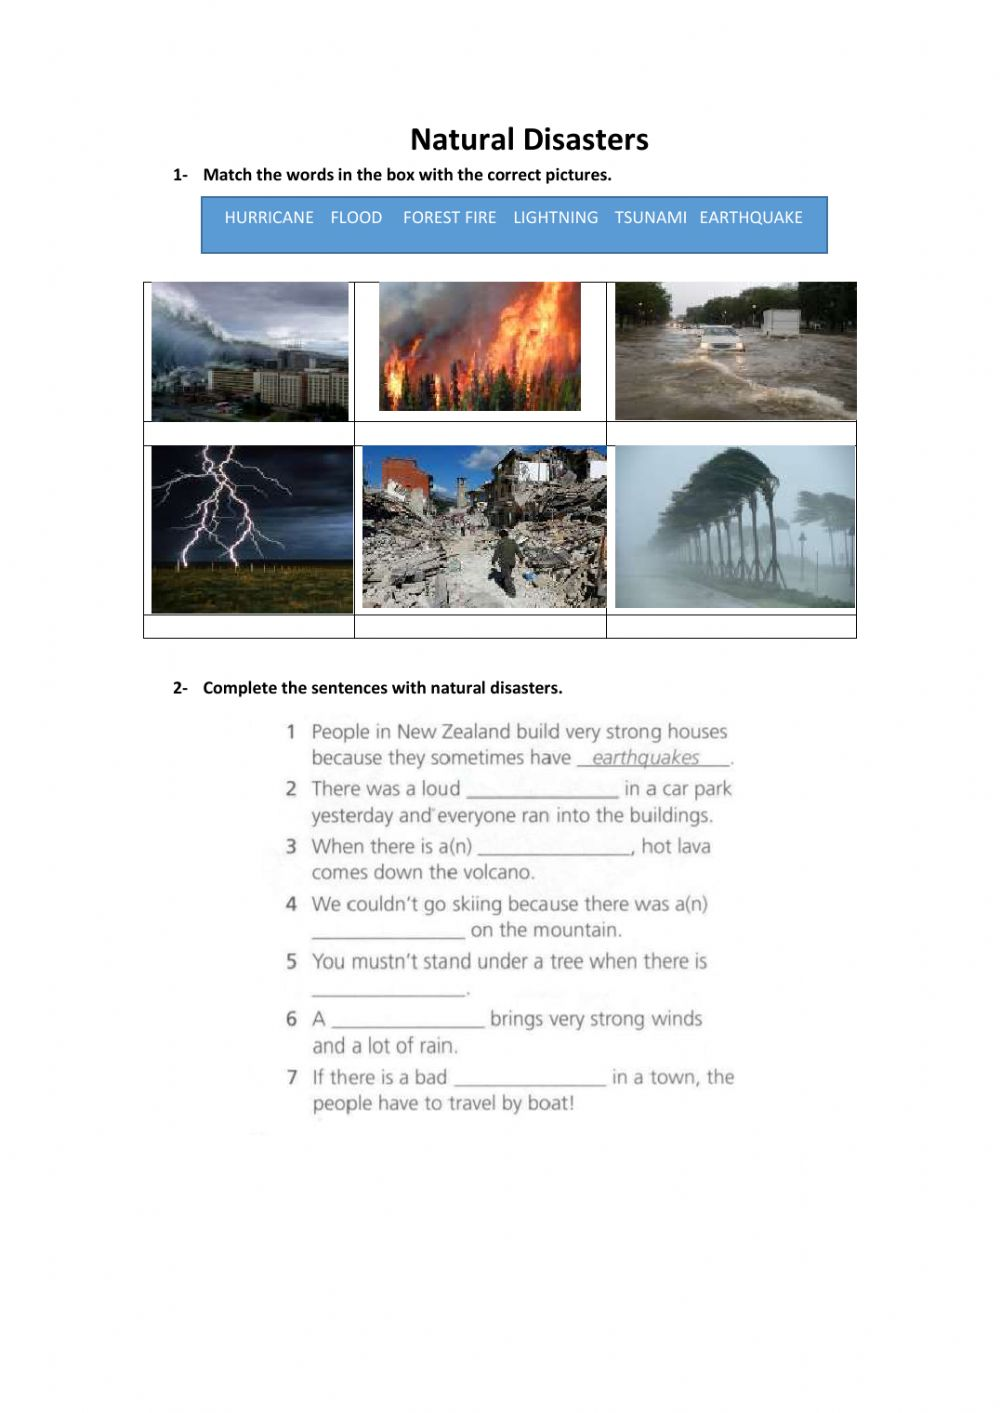 hight resolution of Natural Disasters zsciencez exercise